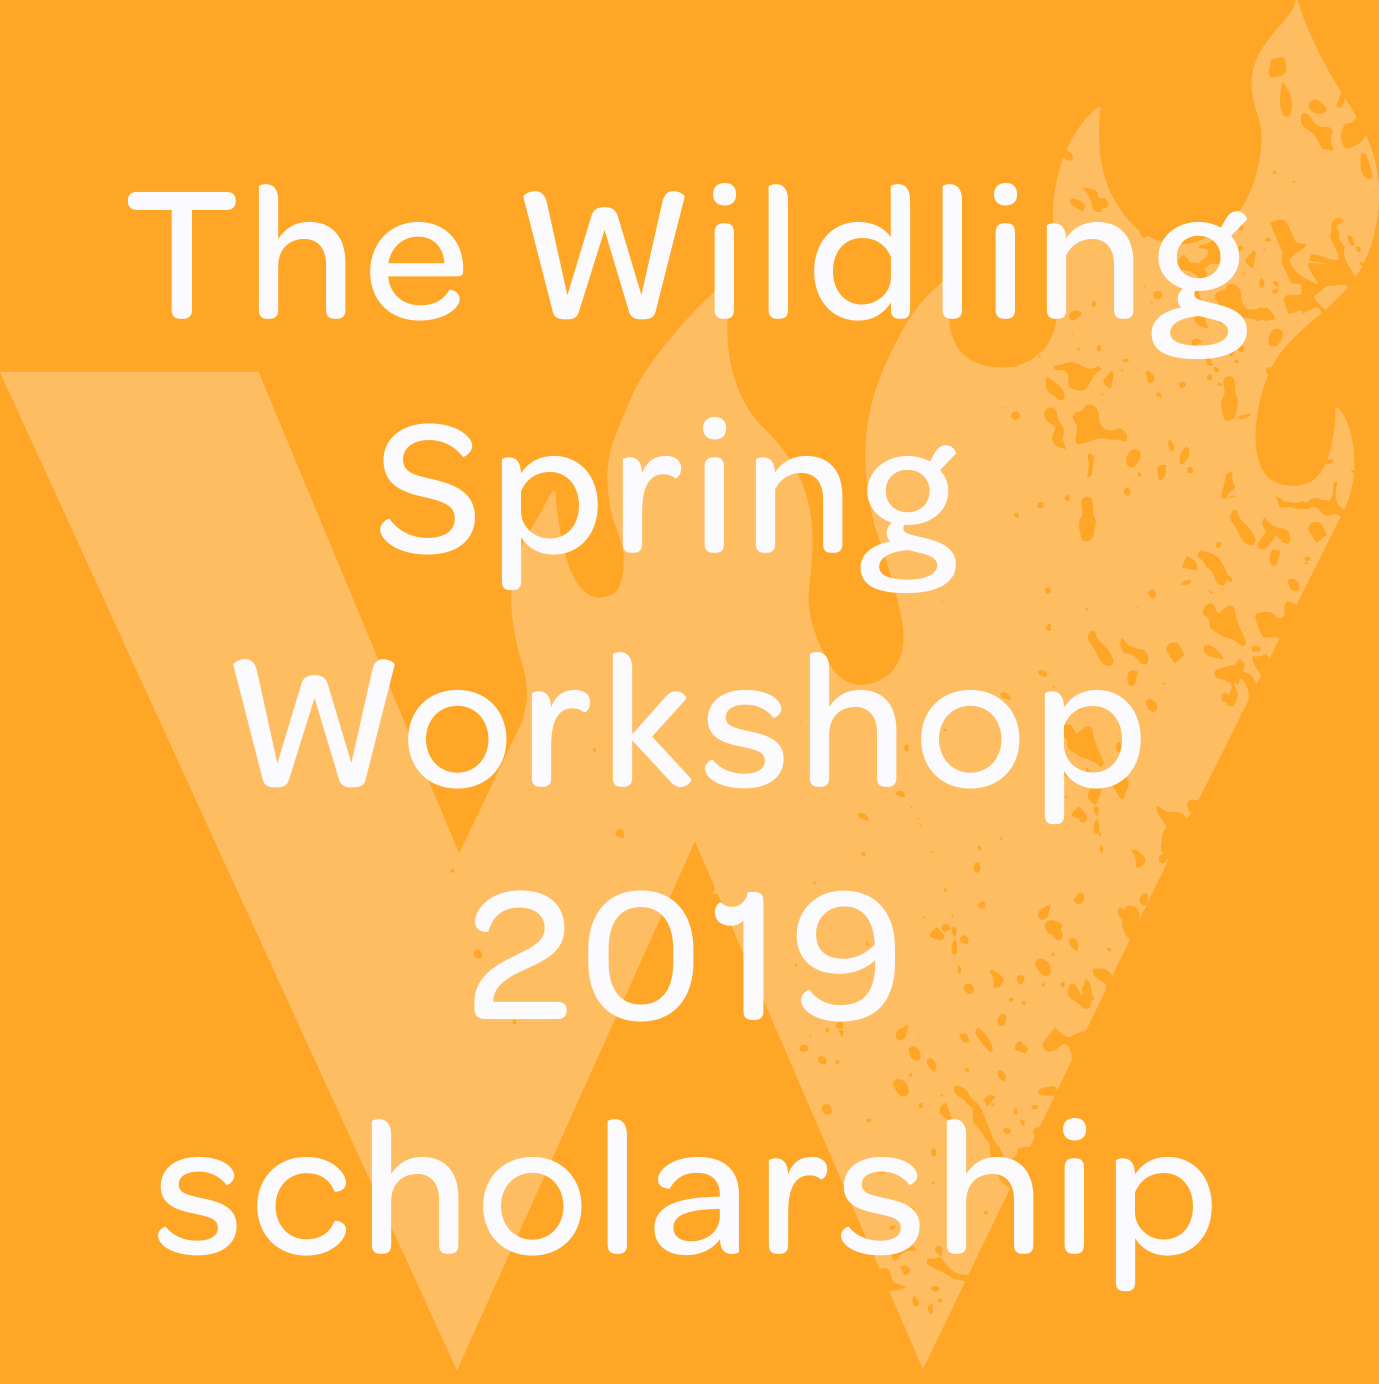 TheWildlingLogo_spring-workshop-scholarship